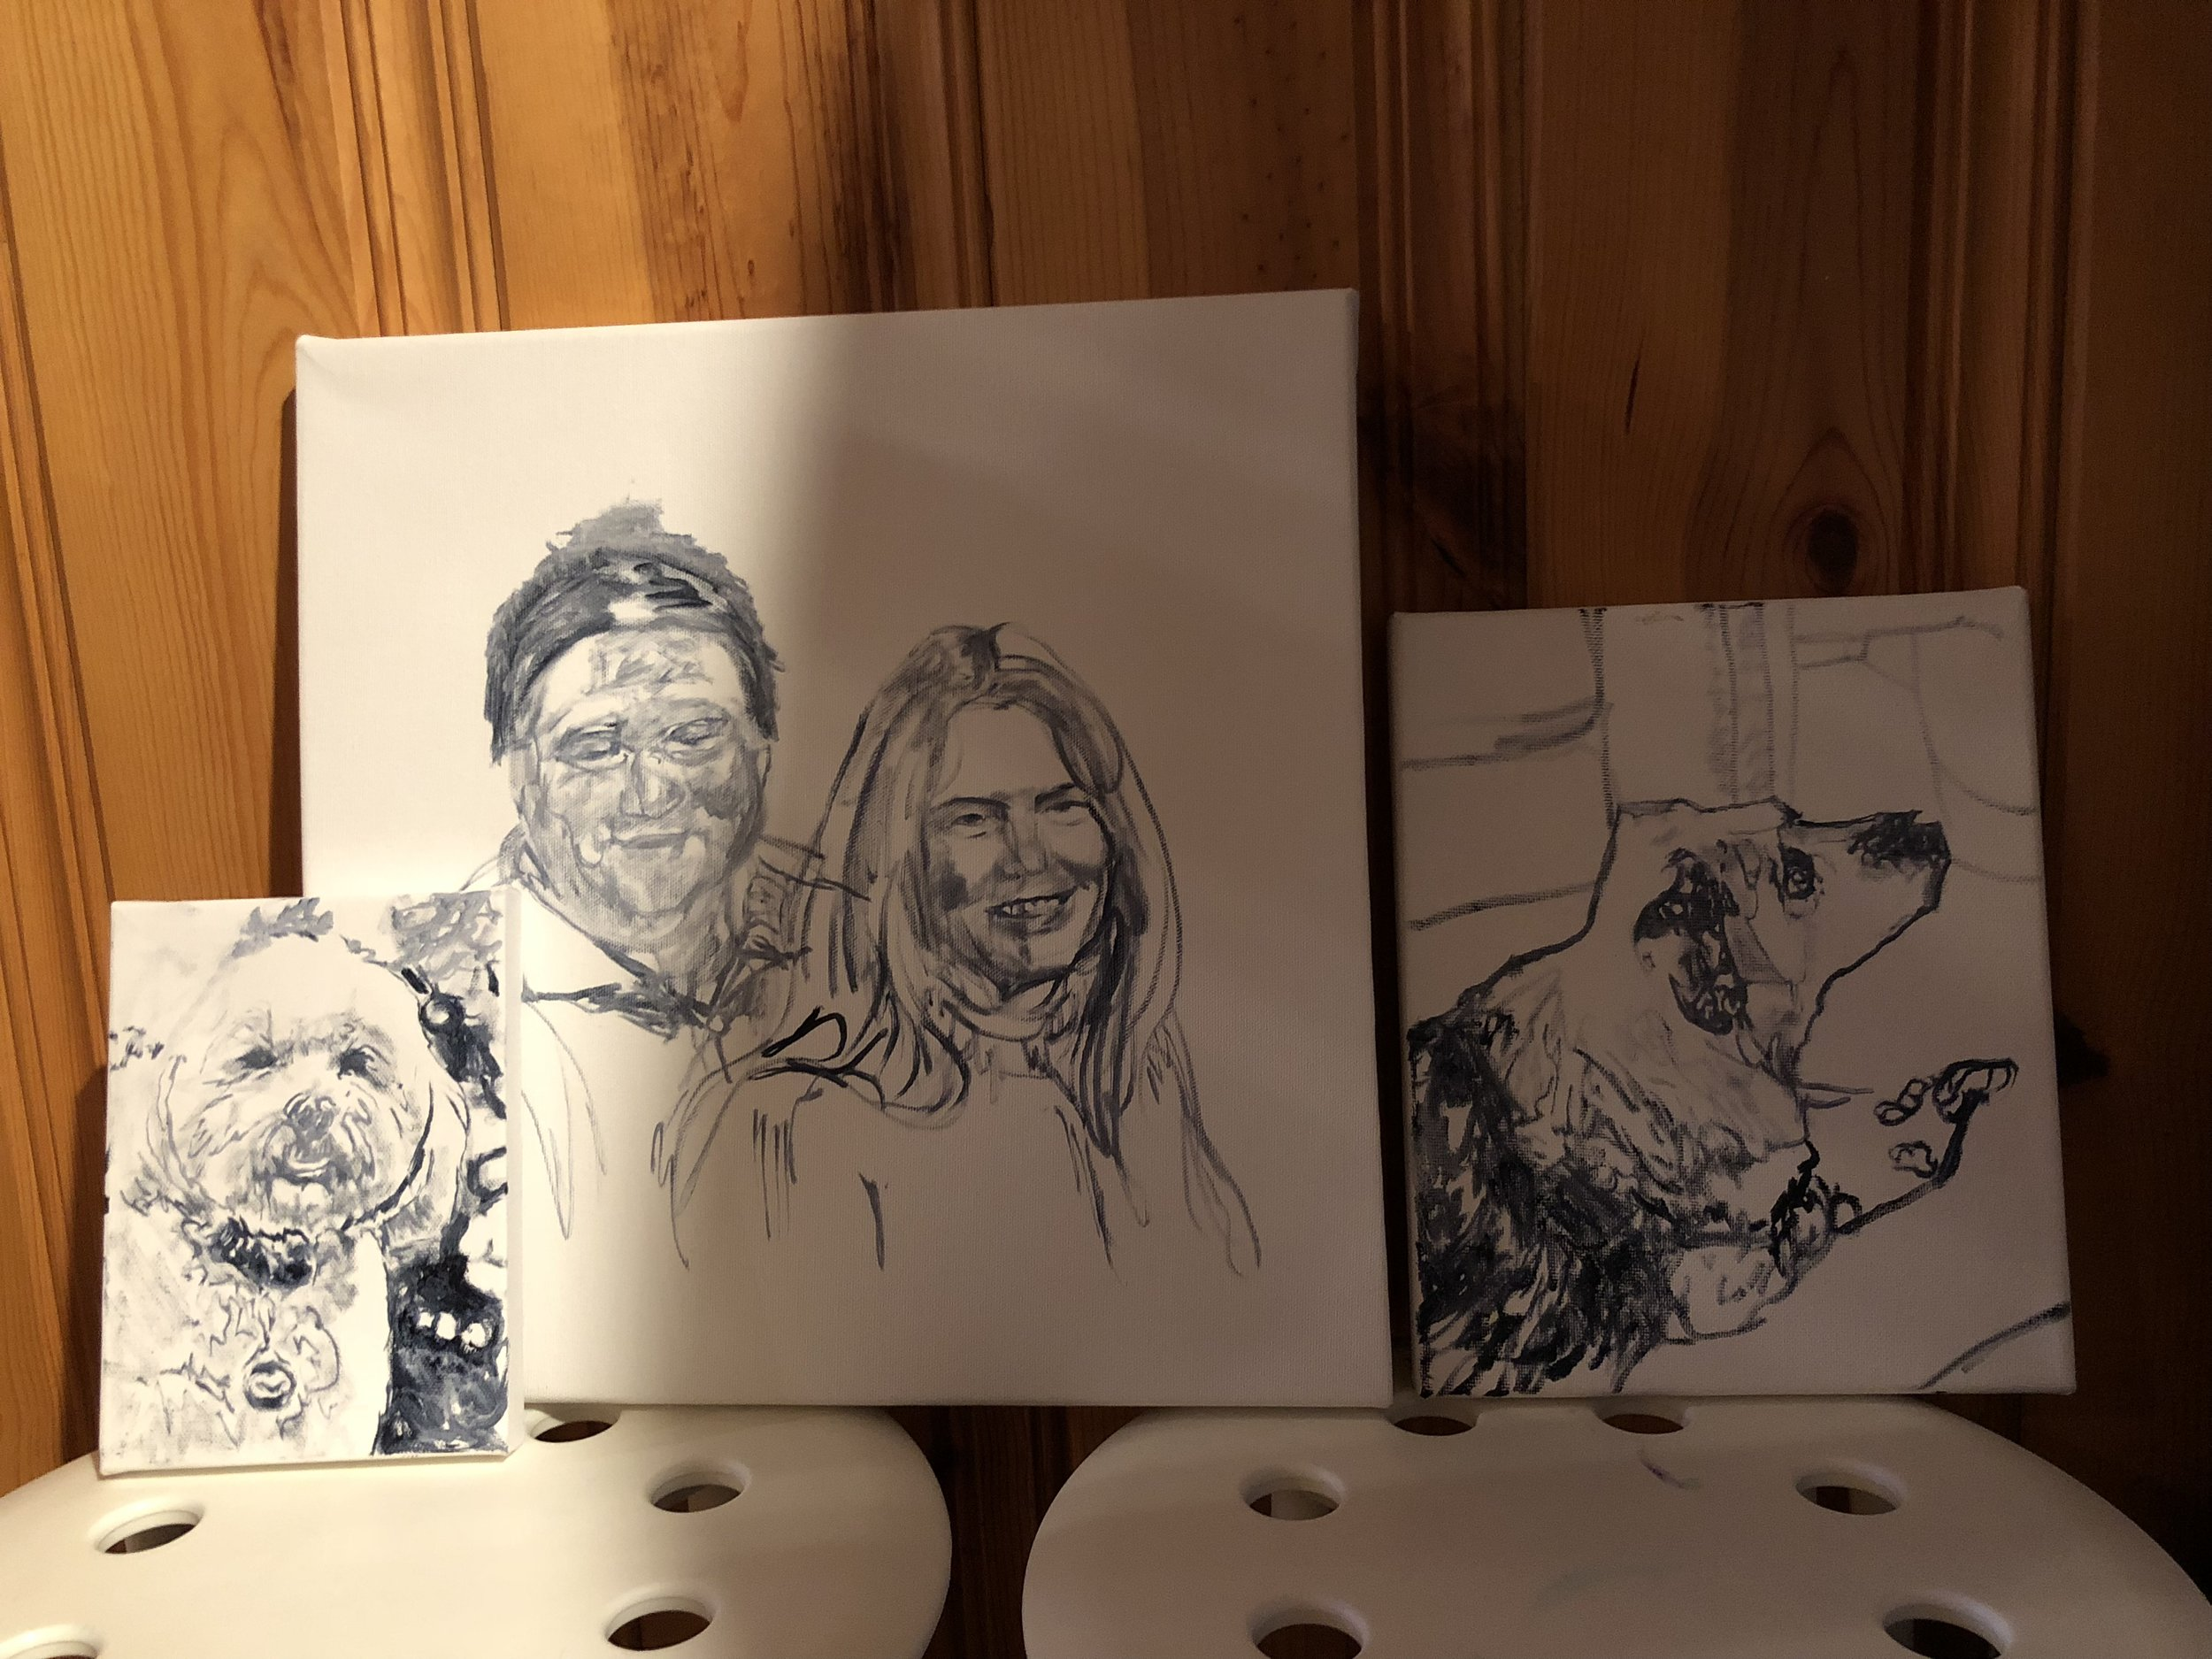 I melded two faces at different angles and ages for the person on the left's portrait. I'll be adding an elk, Mt. Rainier, and buoys in the Puget Sound around them.